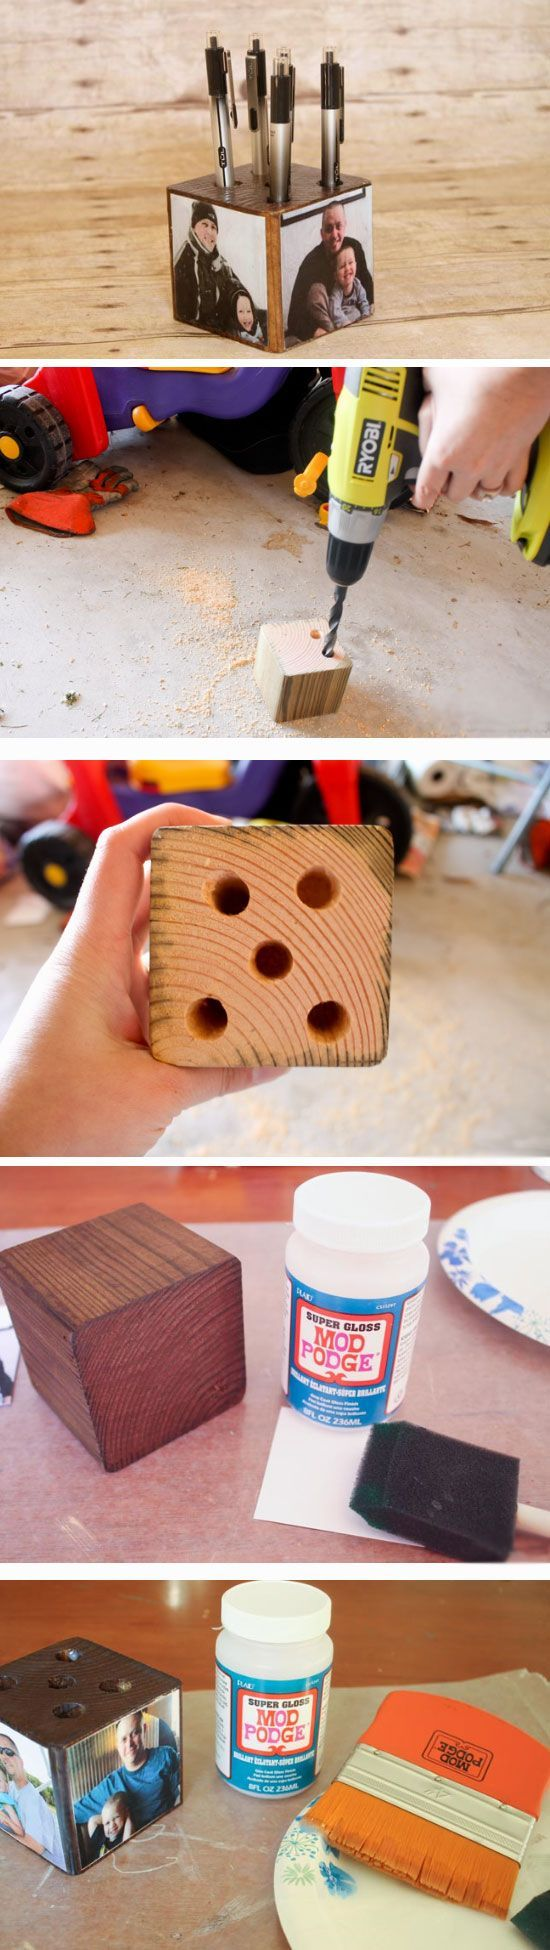 Photo Pen Holder | Click Pic for 20 Easy DIY Christmas Gifts for Grandfather | Handmade Gift Ideas for Grandparents from Kids: